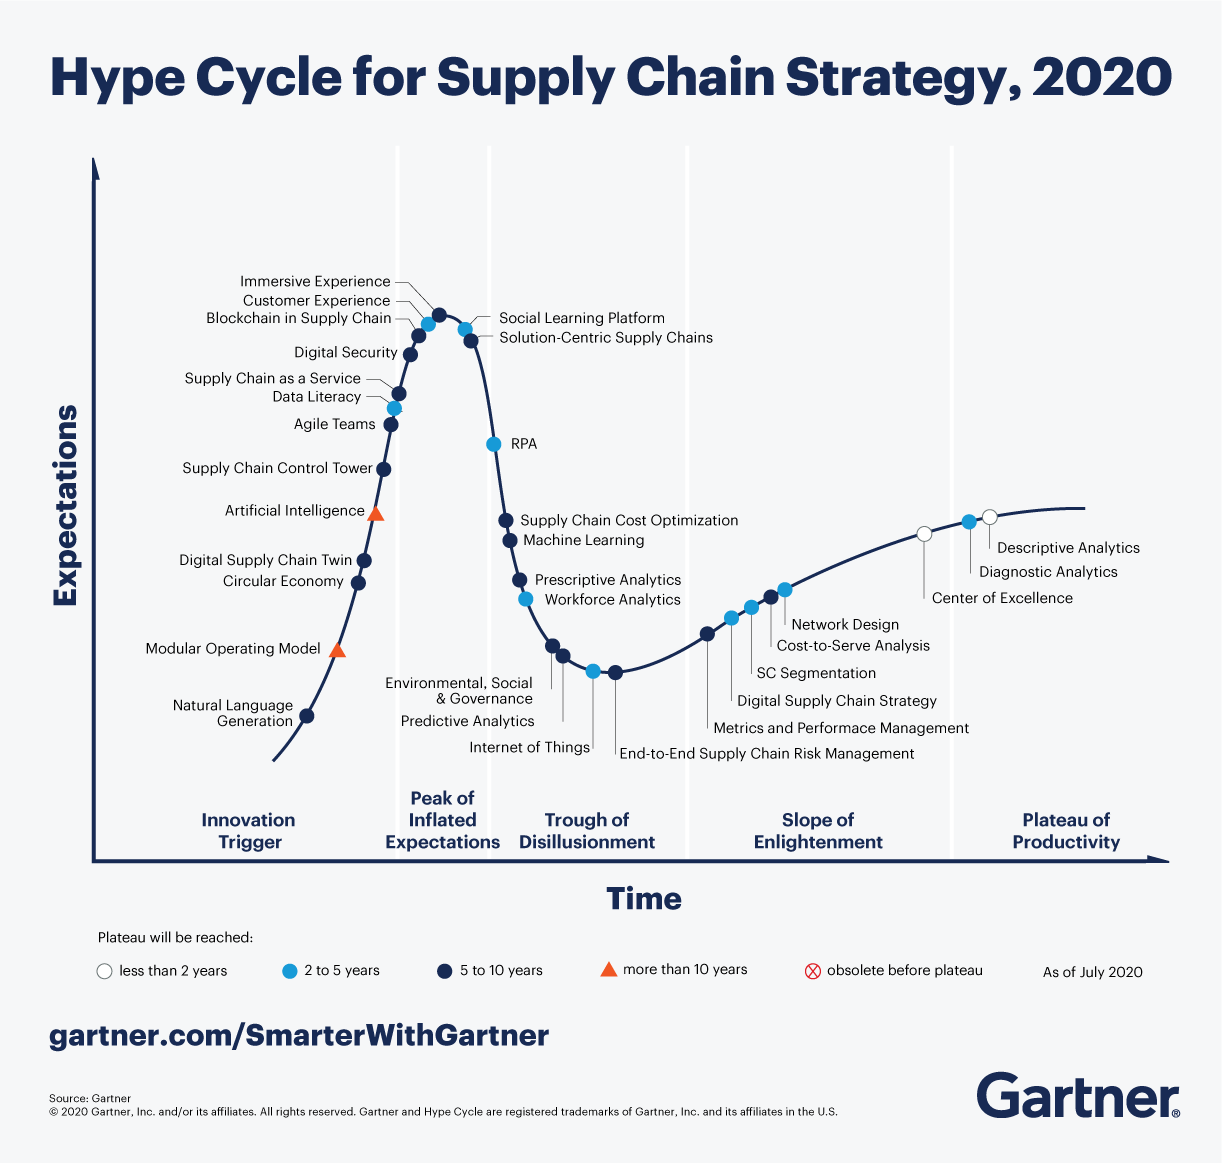 The Gartner Hype Cycle for Supply Chain Strategy, 2020